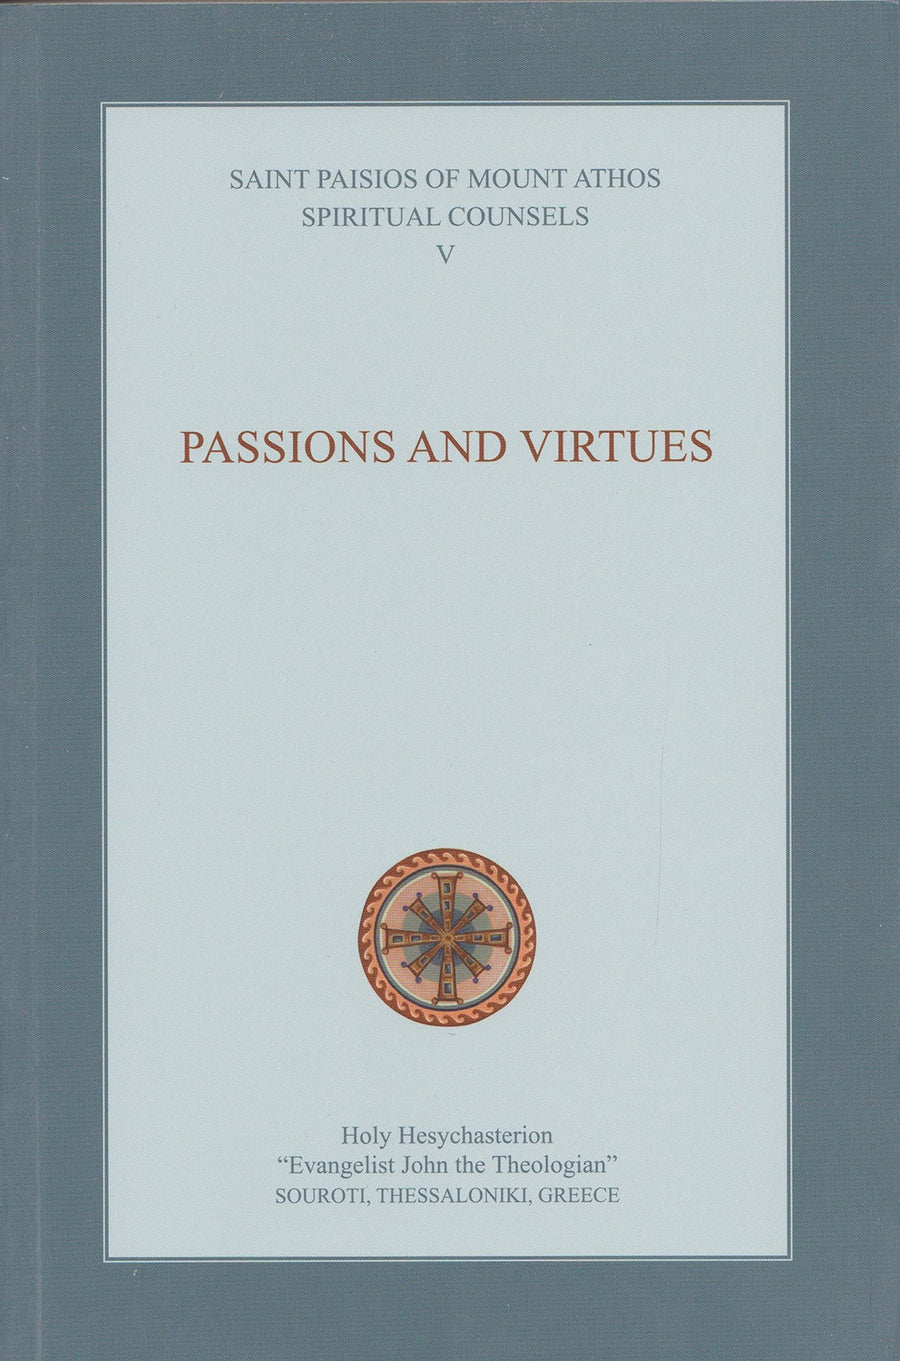 Vol. 5 - Passions and Virtues (Elder Paisios)